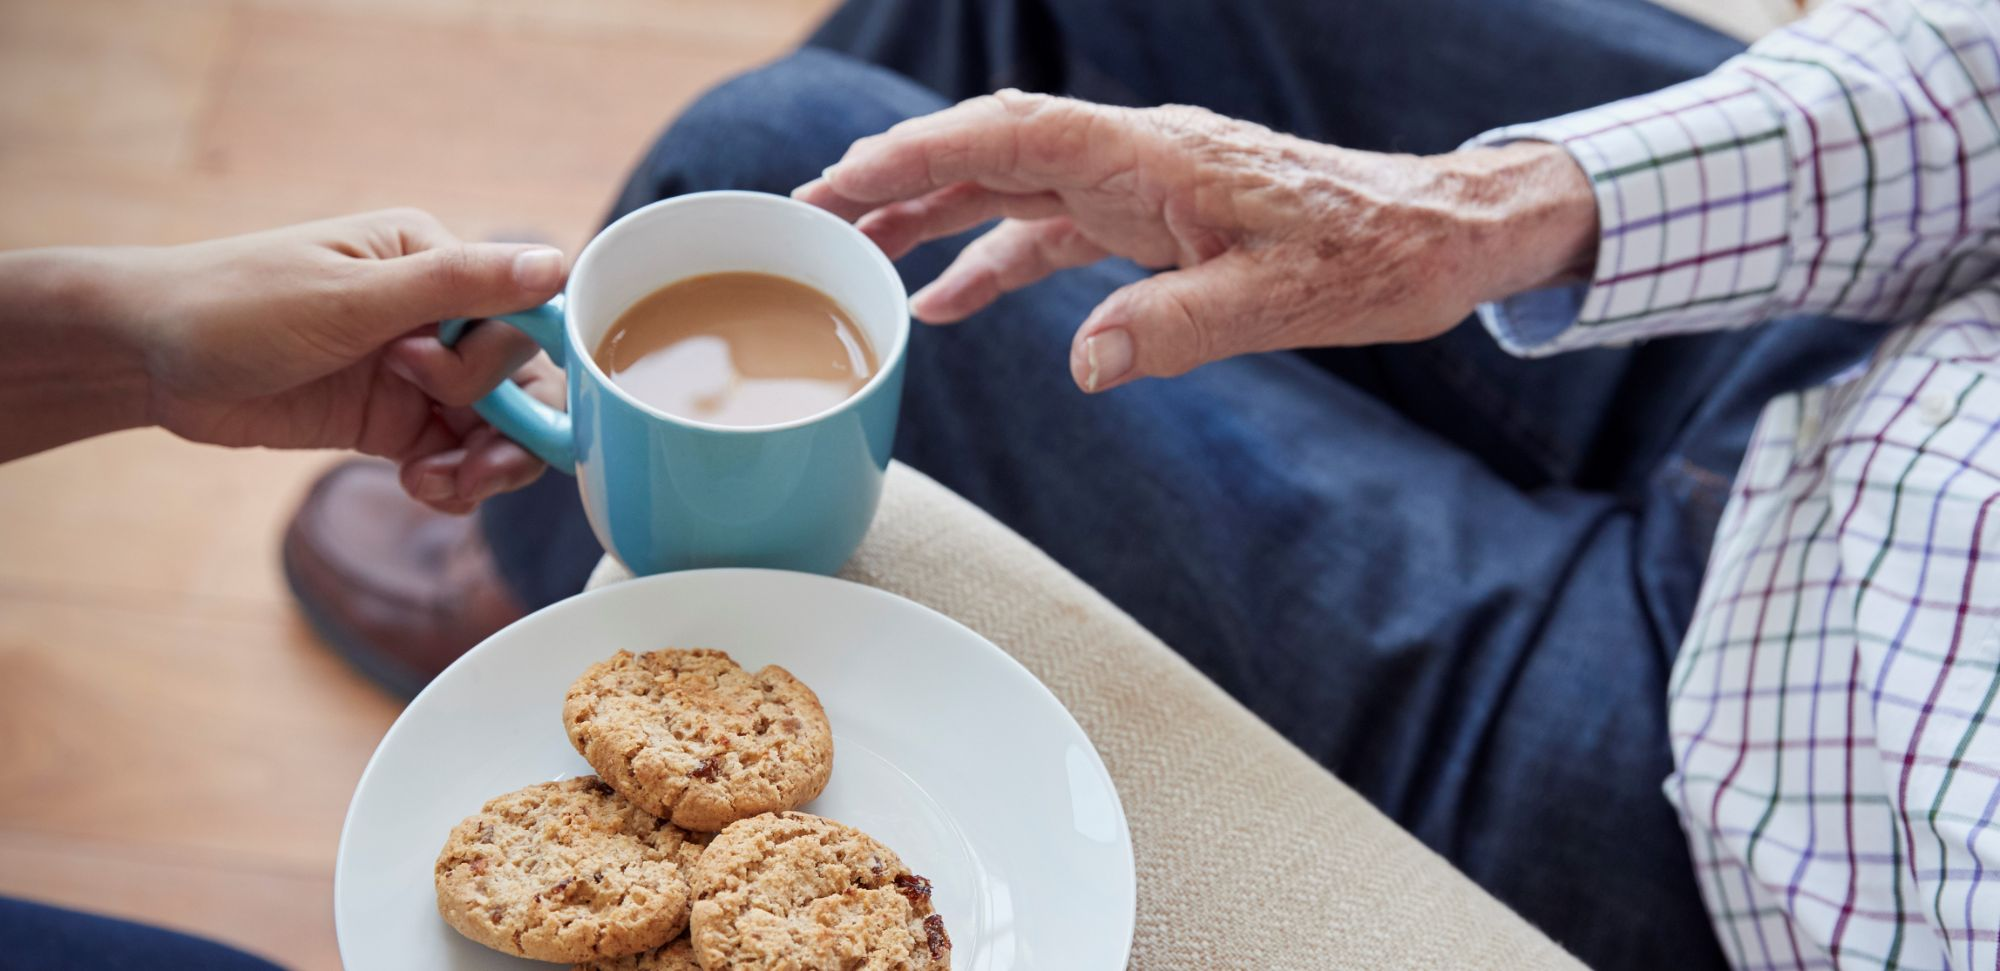 Woman-passes-tea-and-biscuits-to-a-seated-senior-man,-detail-849180252_4719x3147 CROP.jpeg